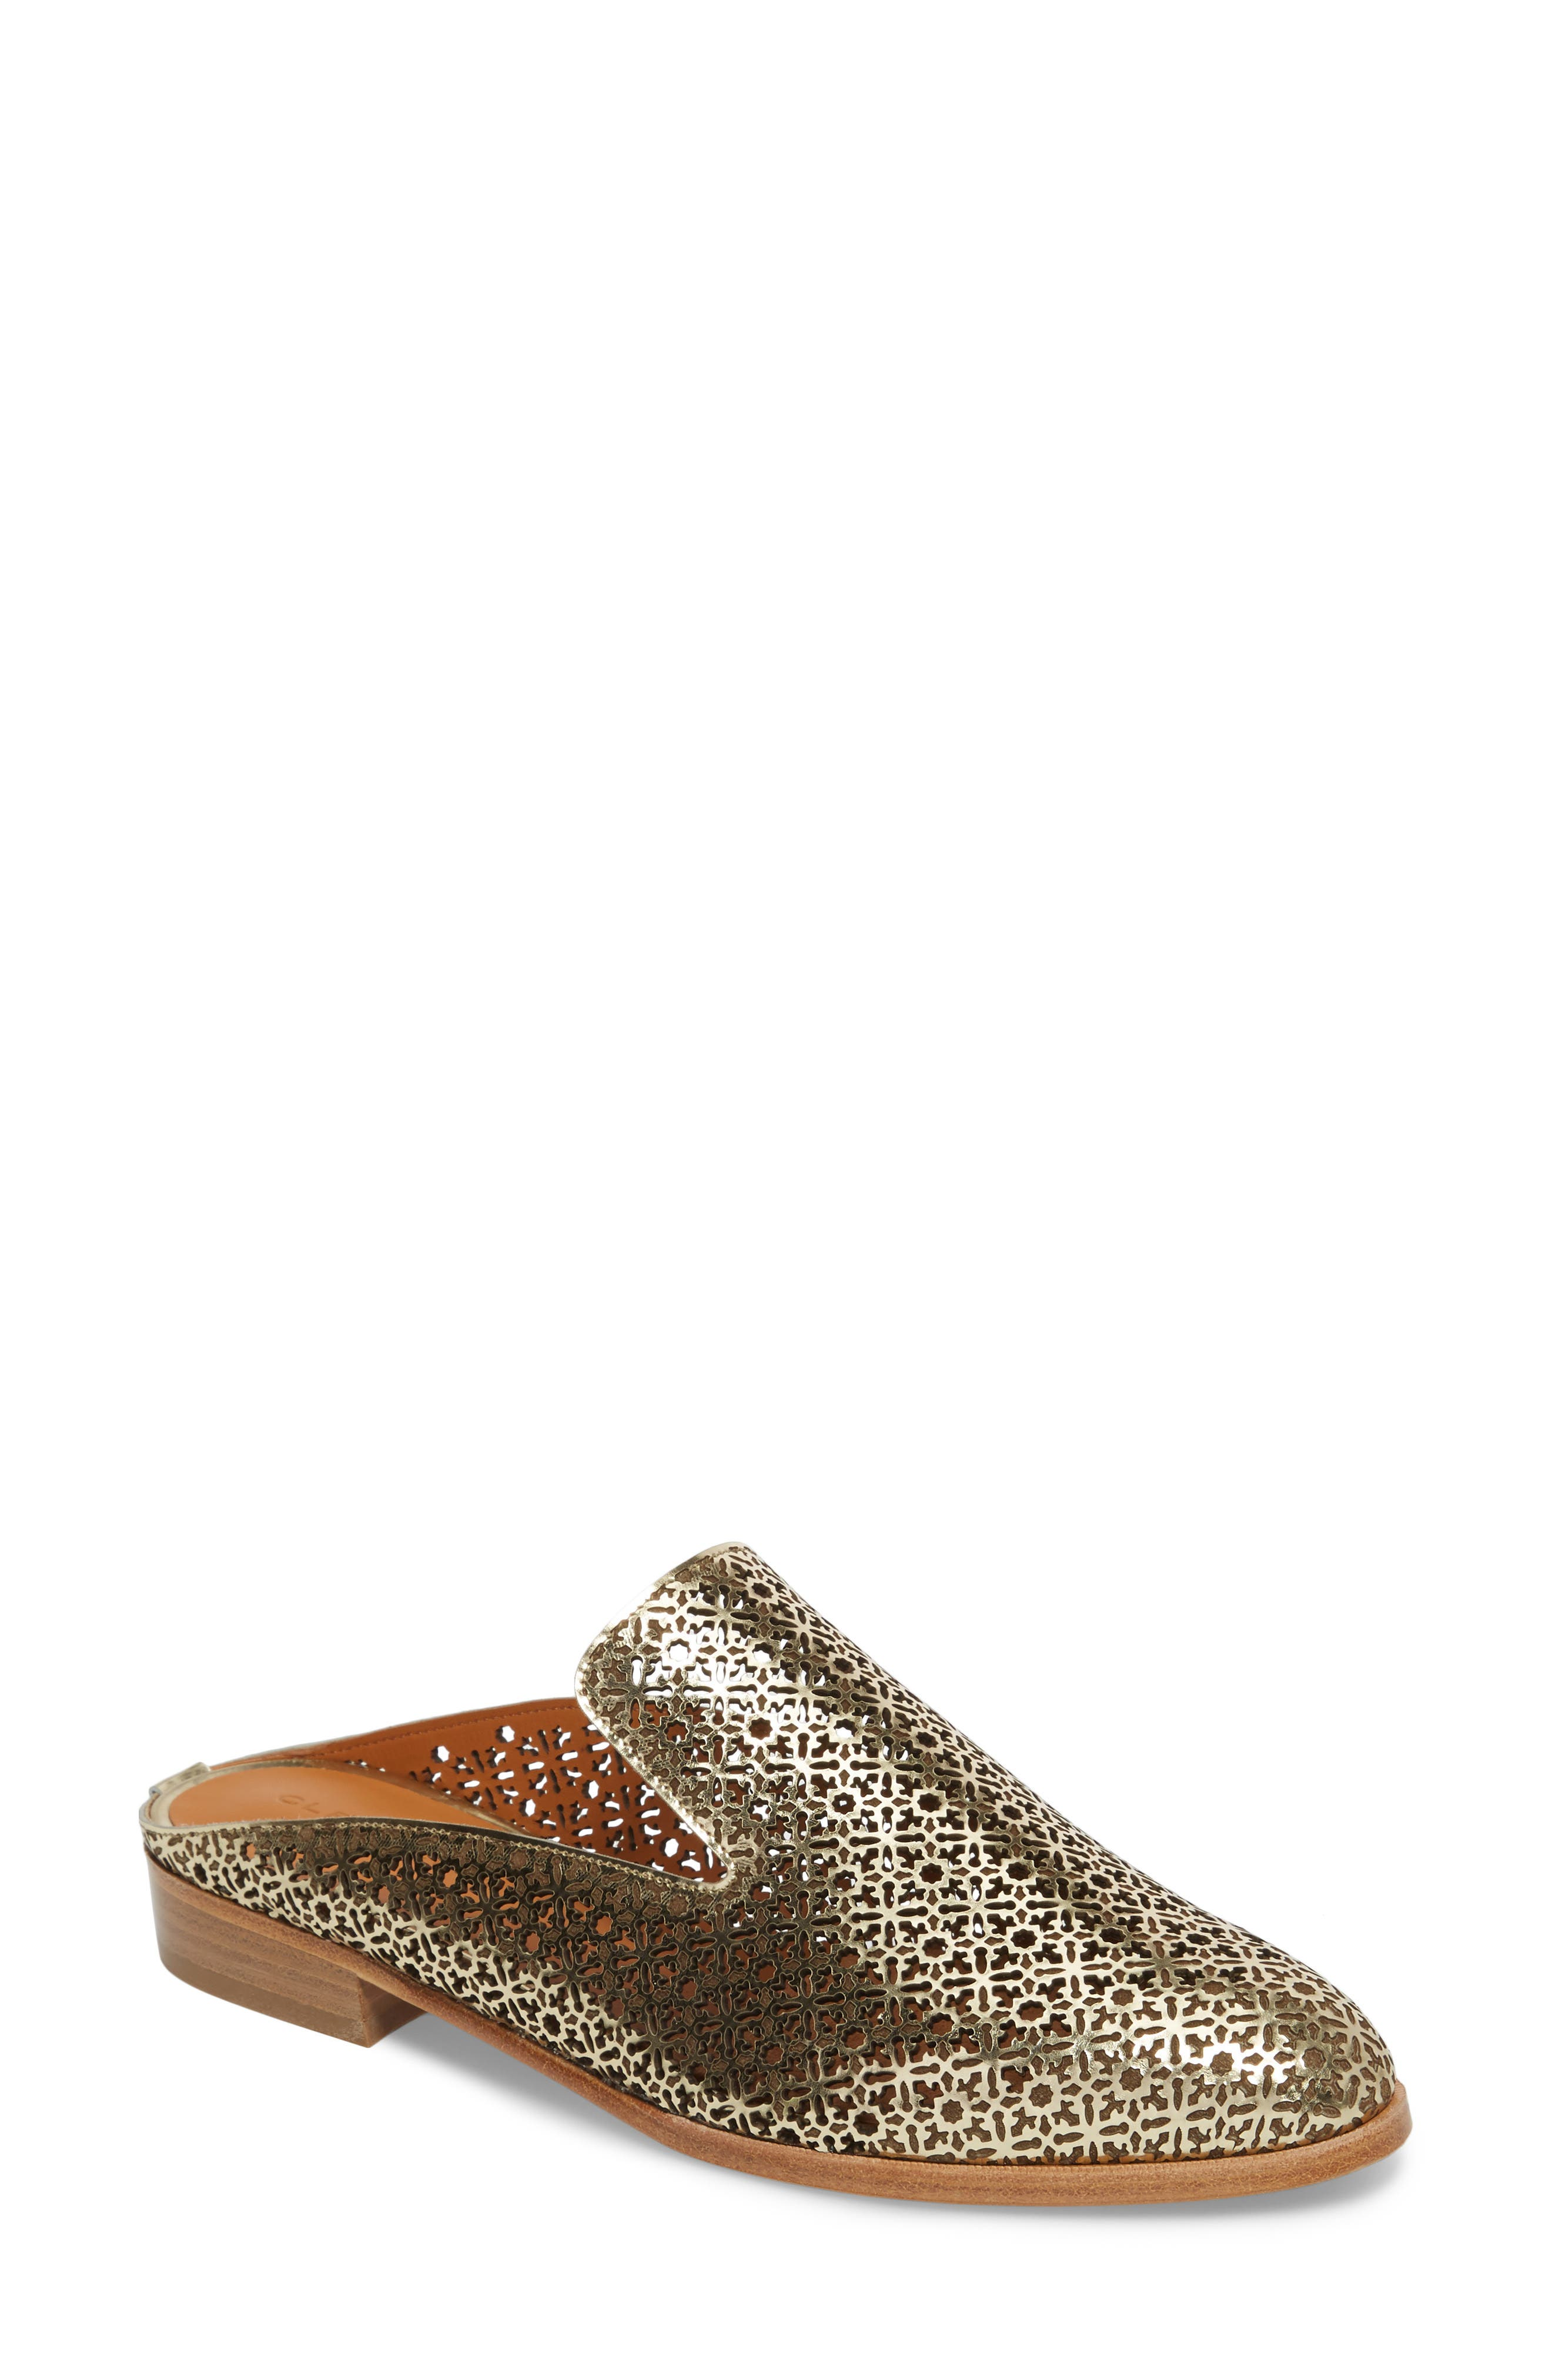 Asier Perforated Loafer Mule,                         Main,                         color, Platino